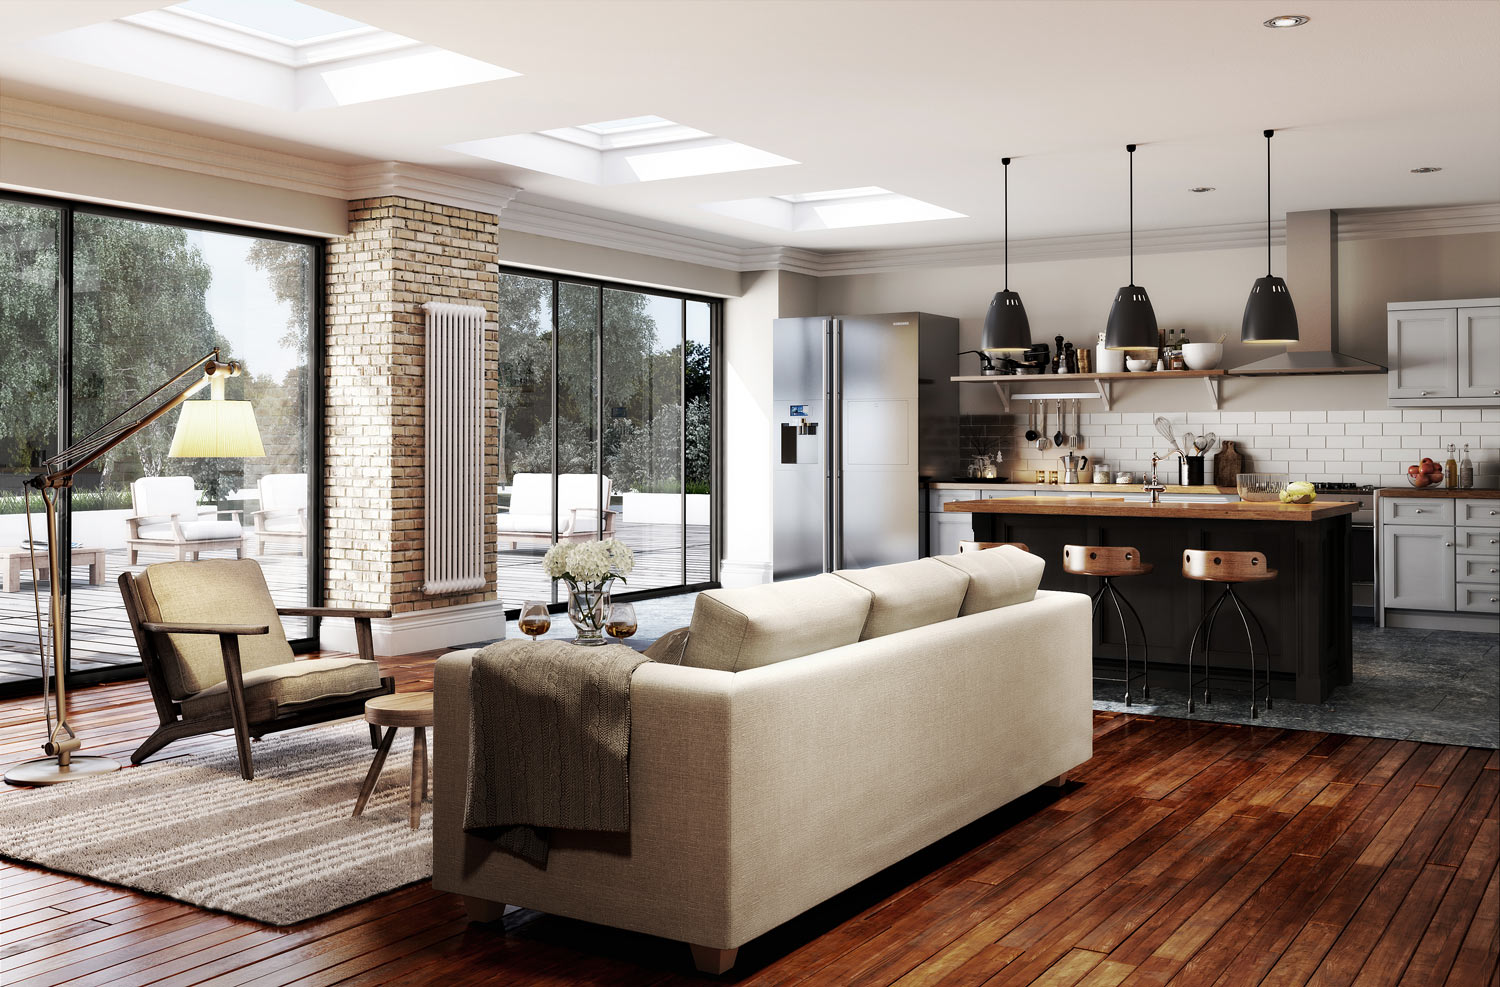 Interior Property CGI